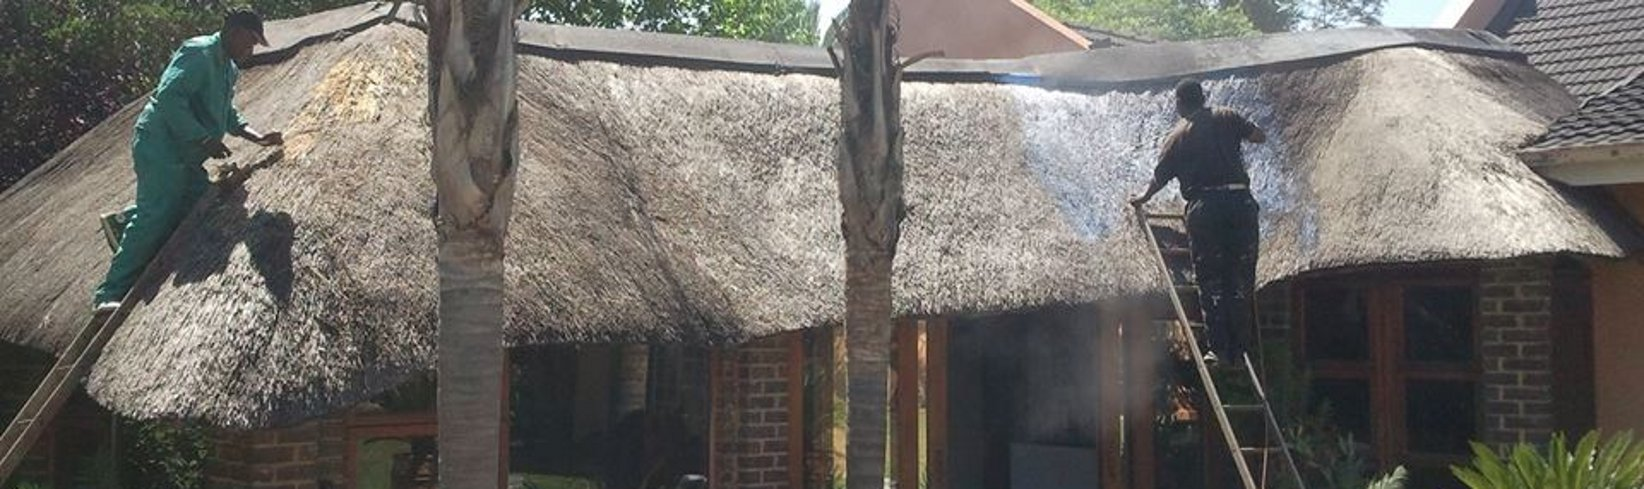 Roof treated with Thatch Marshal 8000, year later same roof had a 2 liter  petrol fire inside